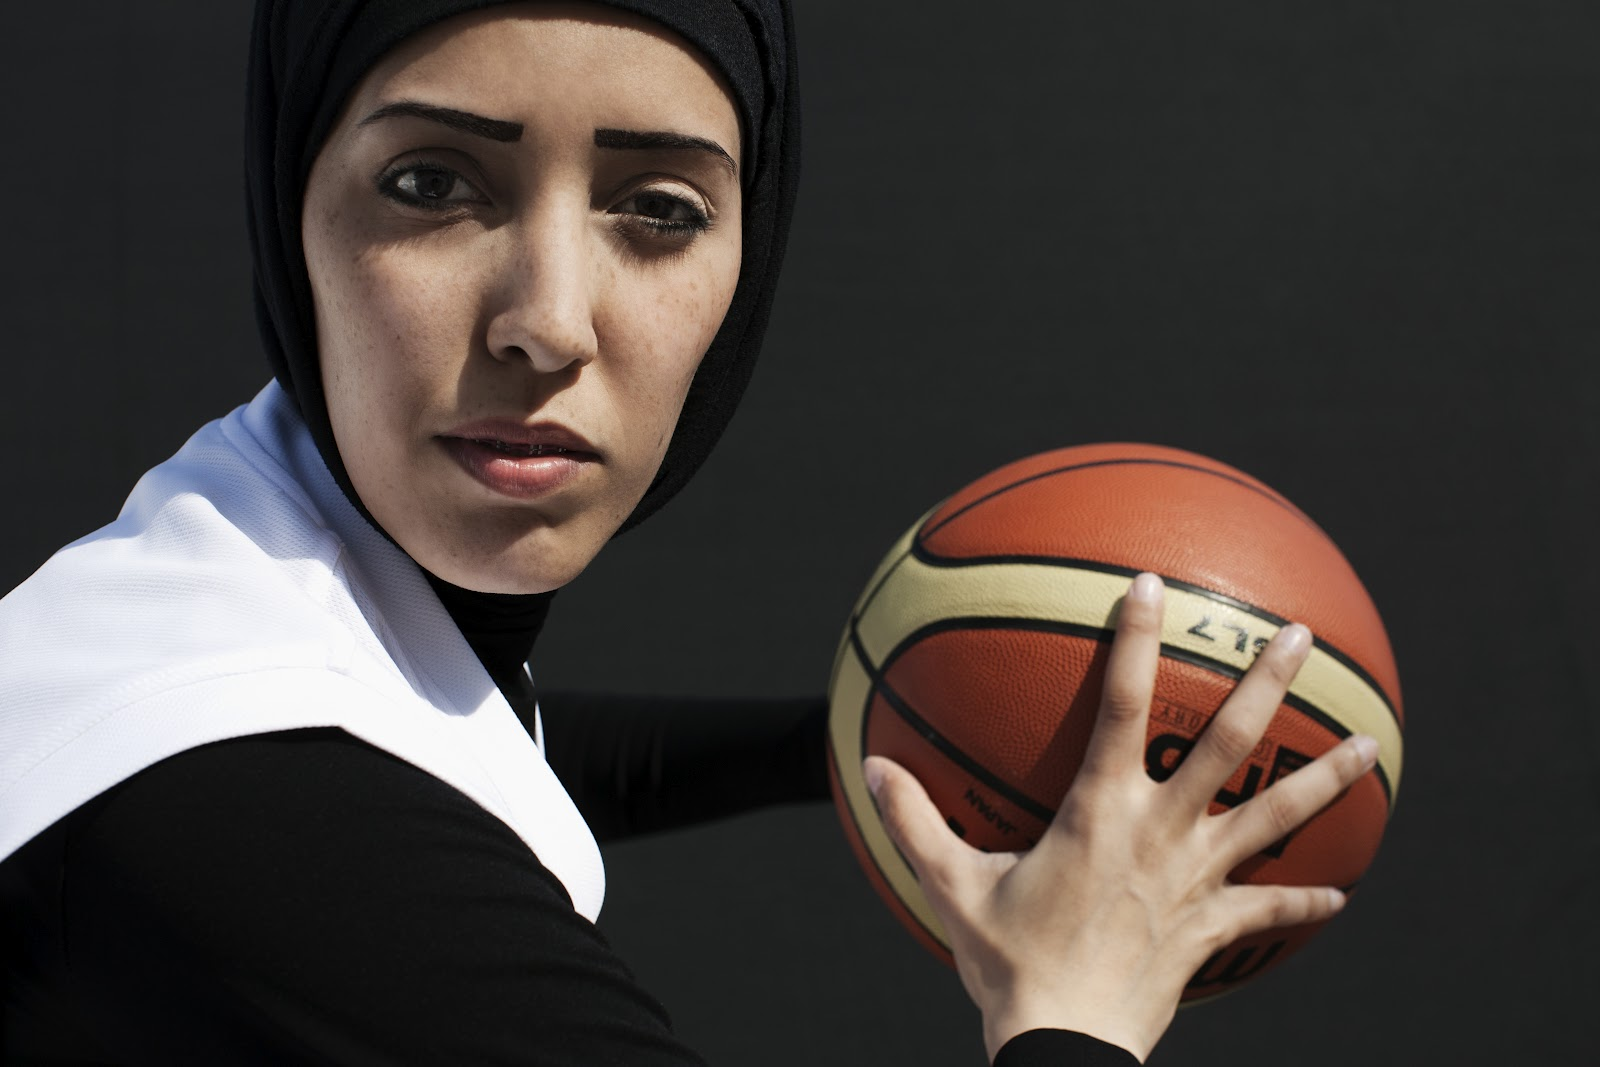 lacombe muslim Qatar has invested in its international brand by hosting major sporting events, developing elite programs and engaging in 'sport diplomacy' the result has been a mix of successes and challenges.